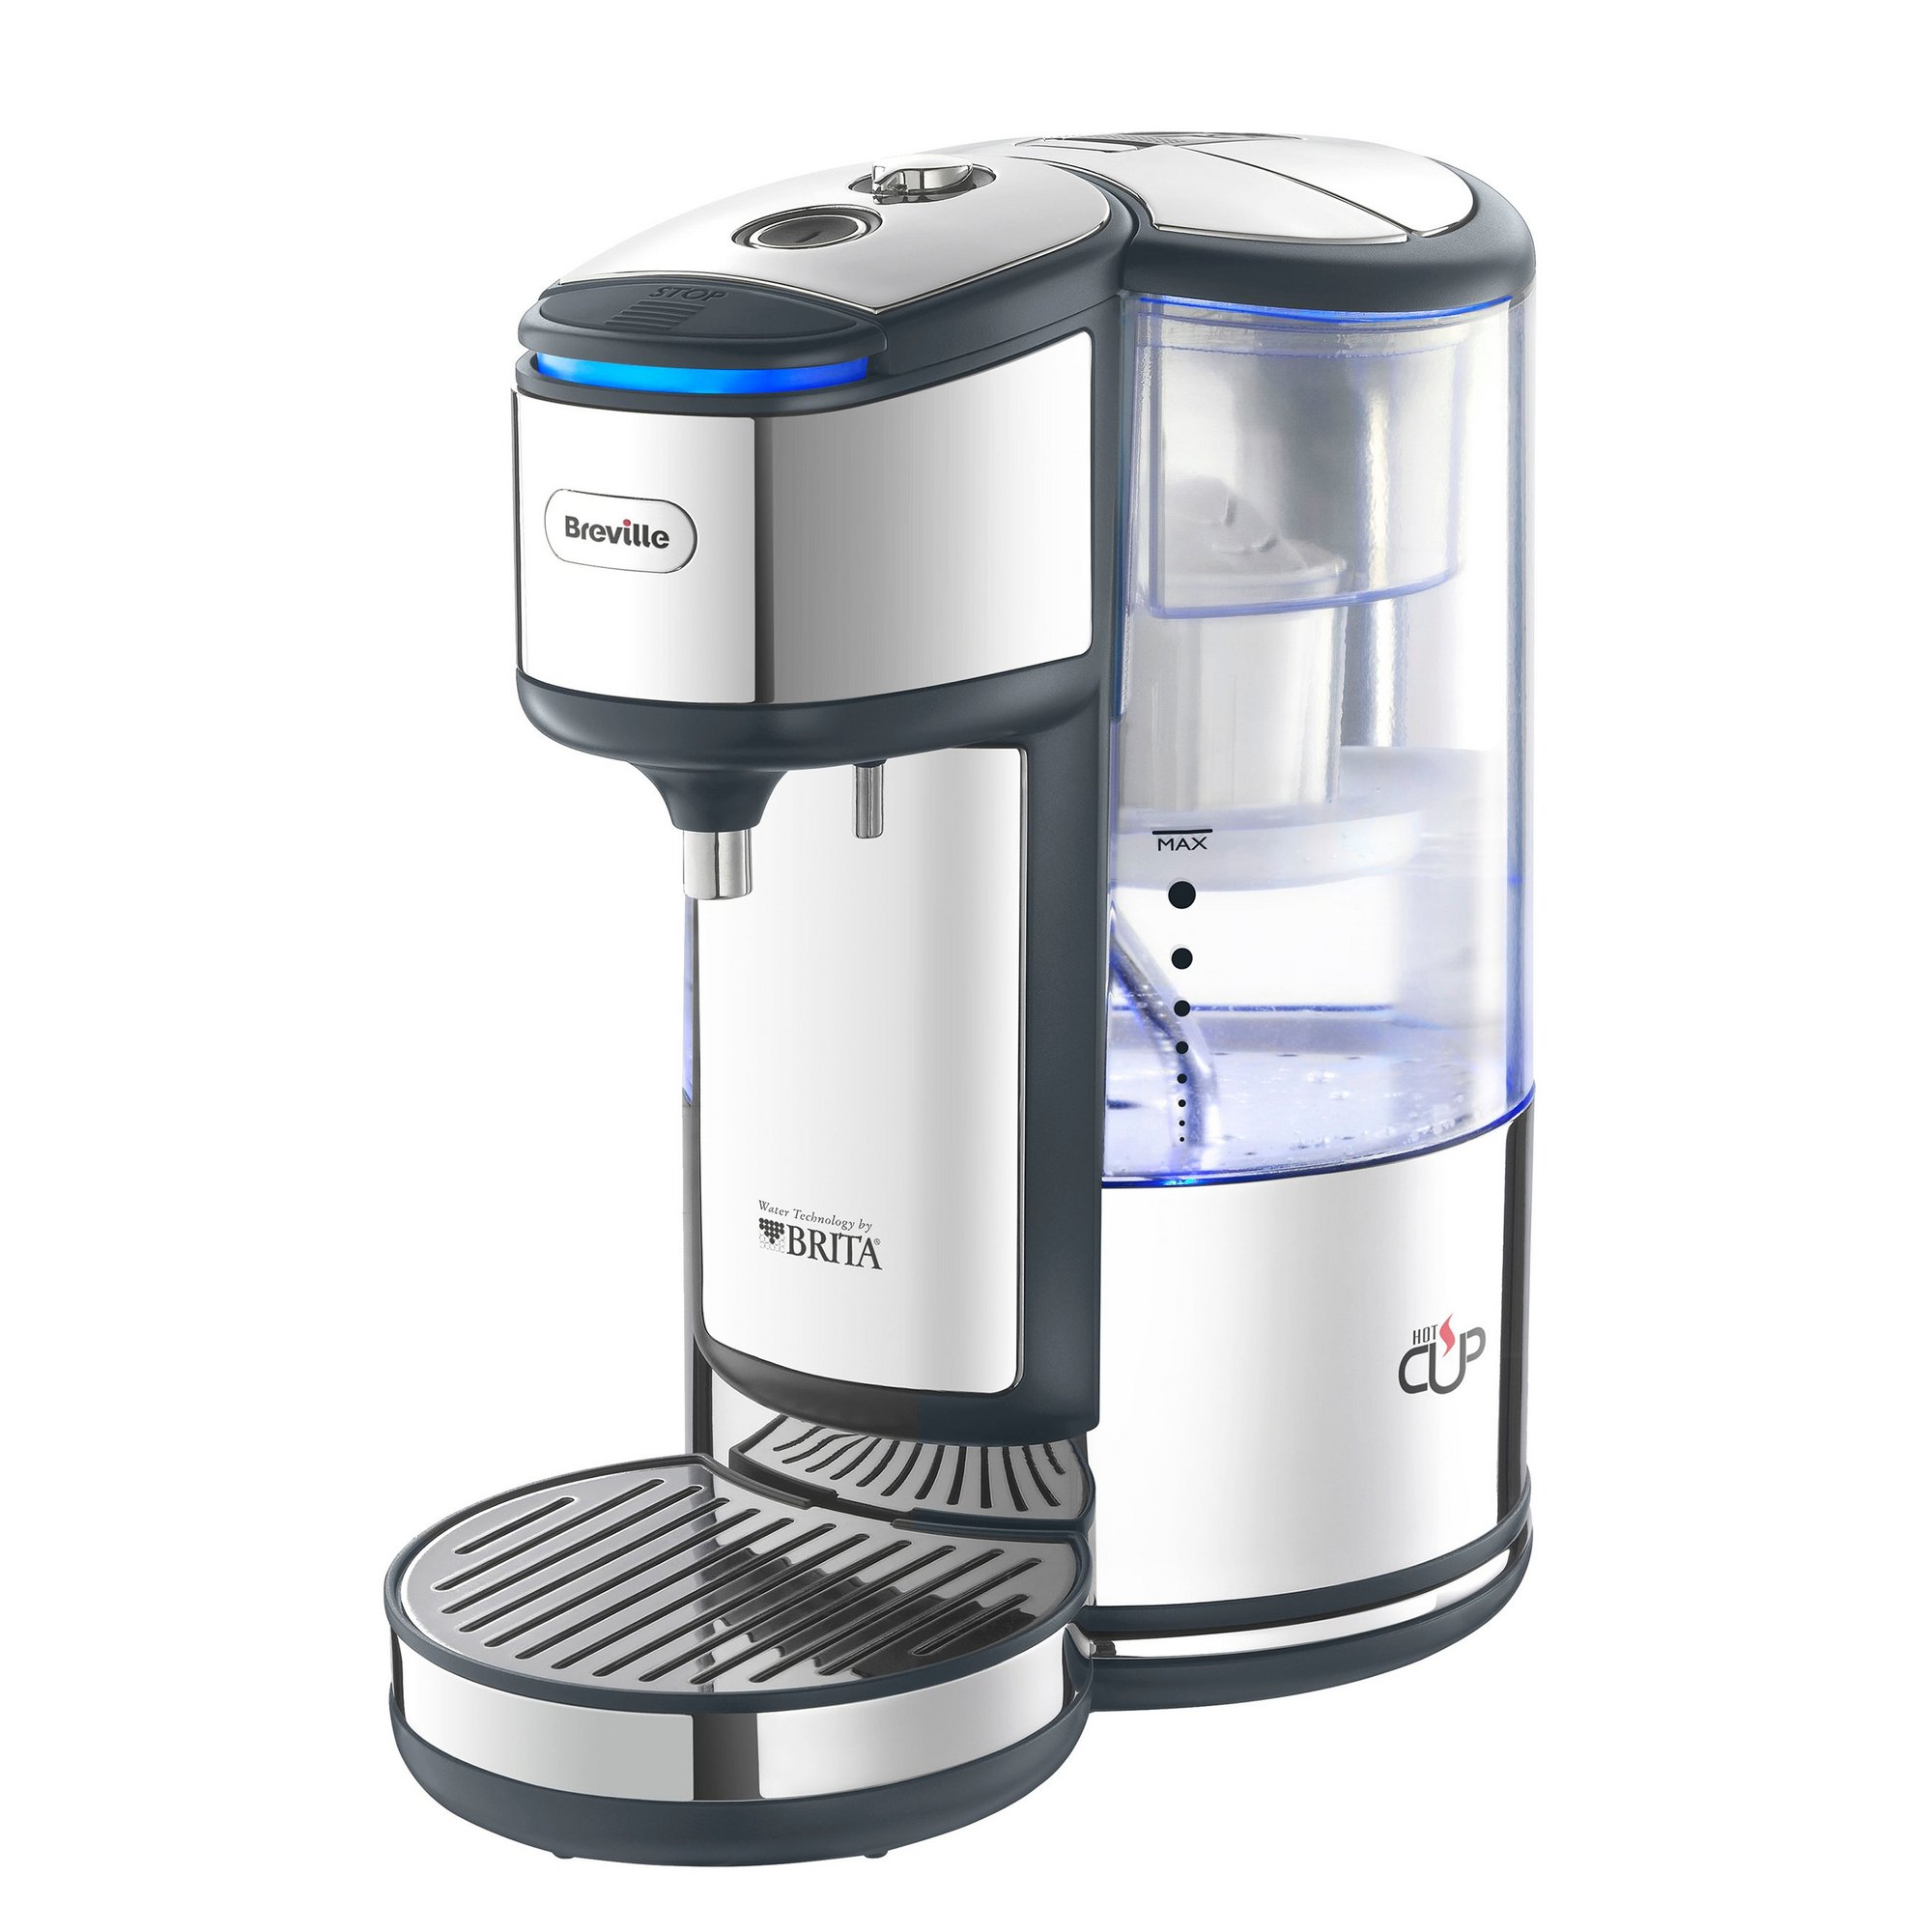 Image of Breville 1.8L Stainless Steel Water Dispenser